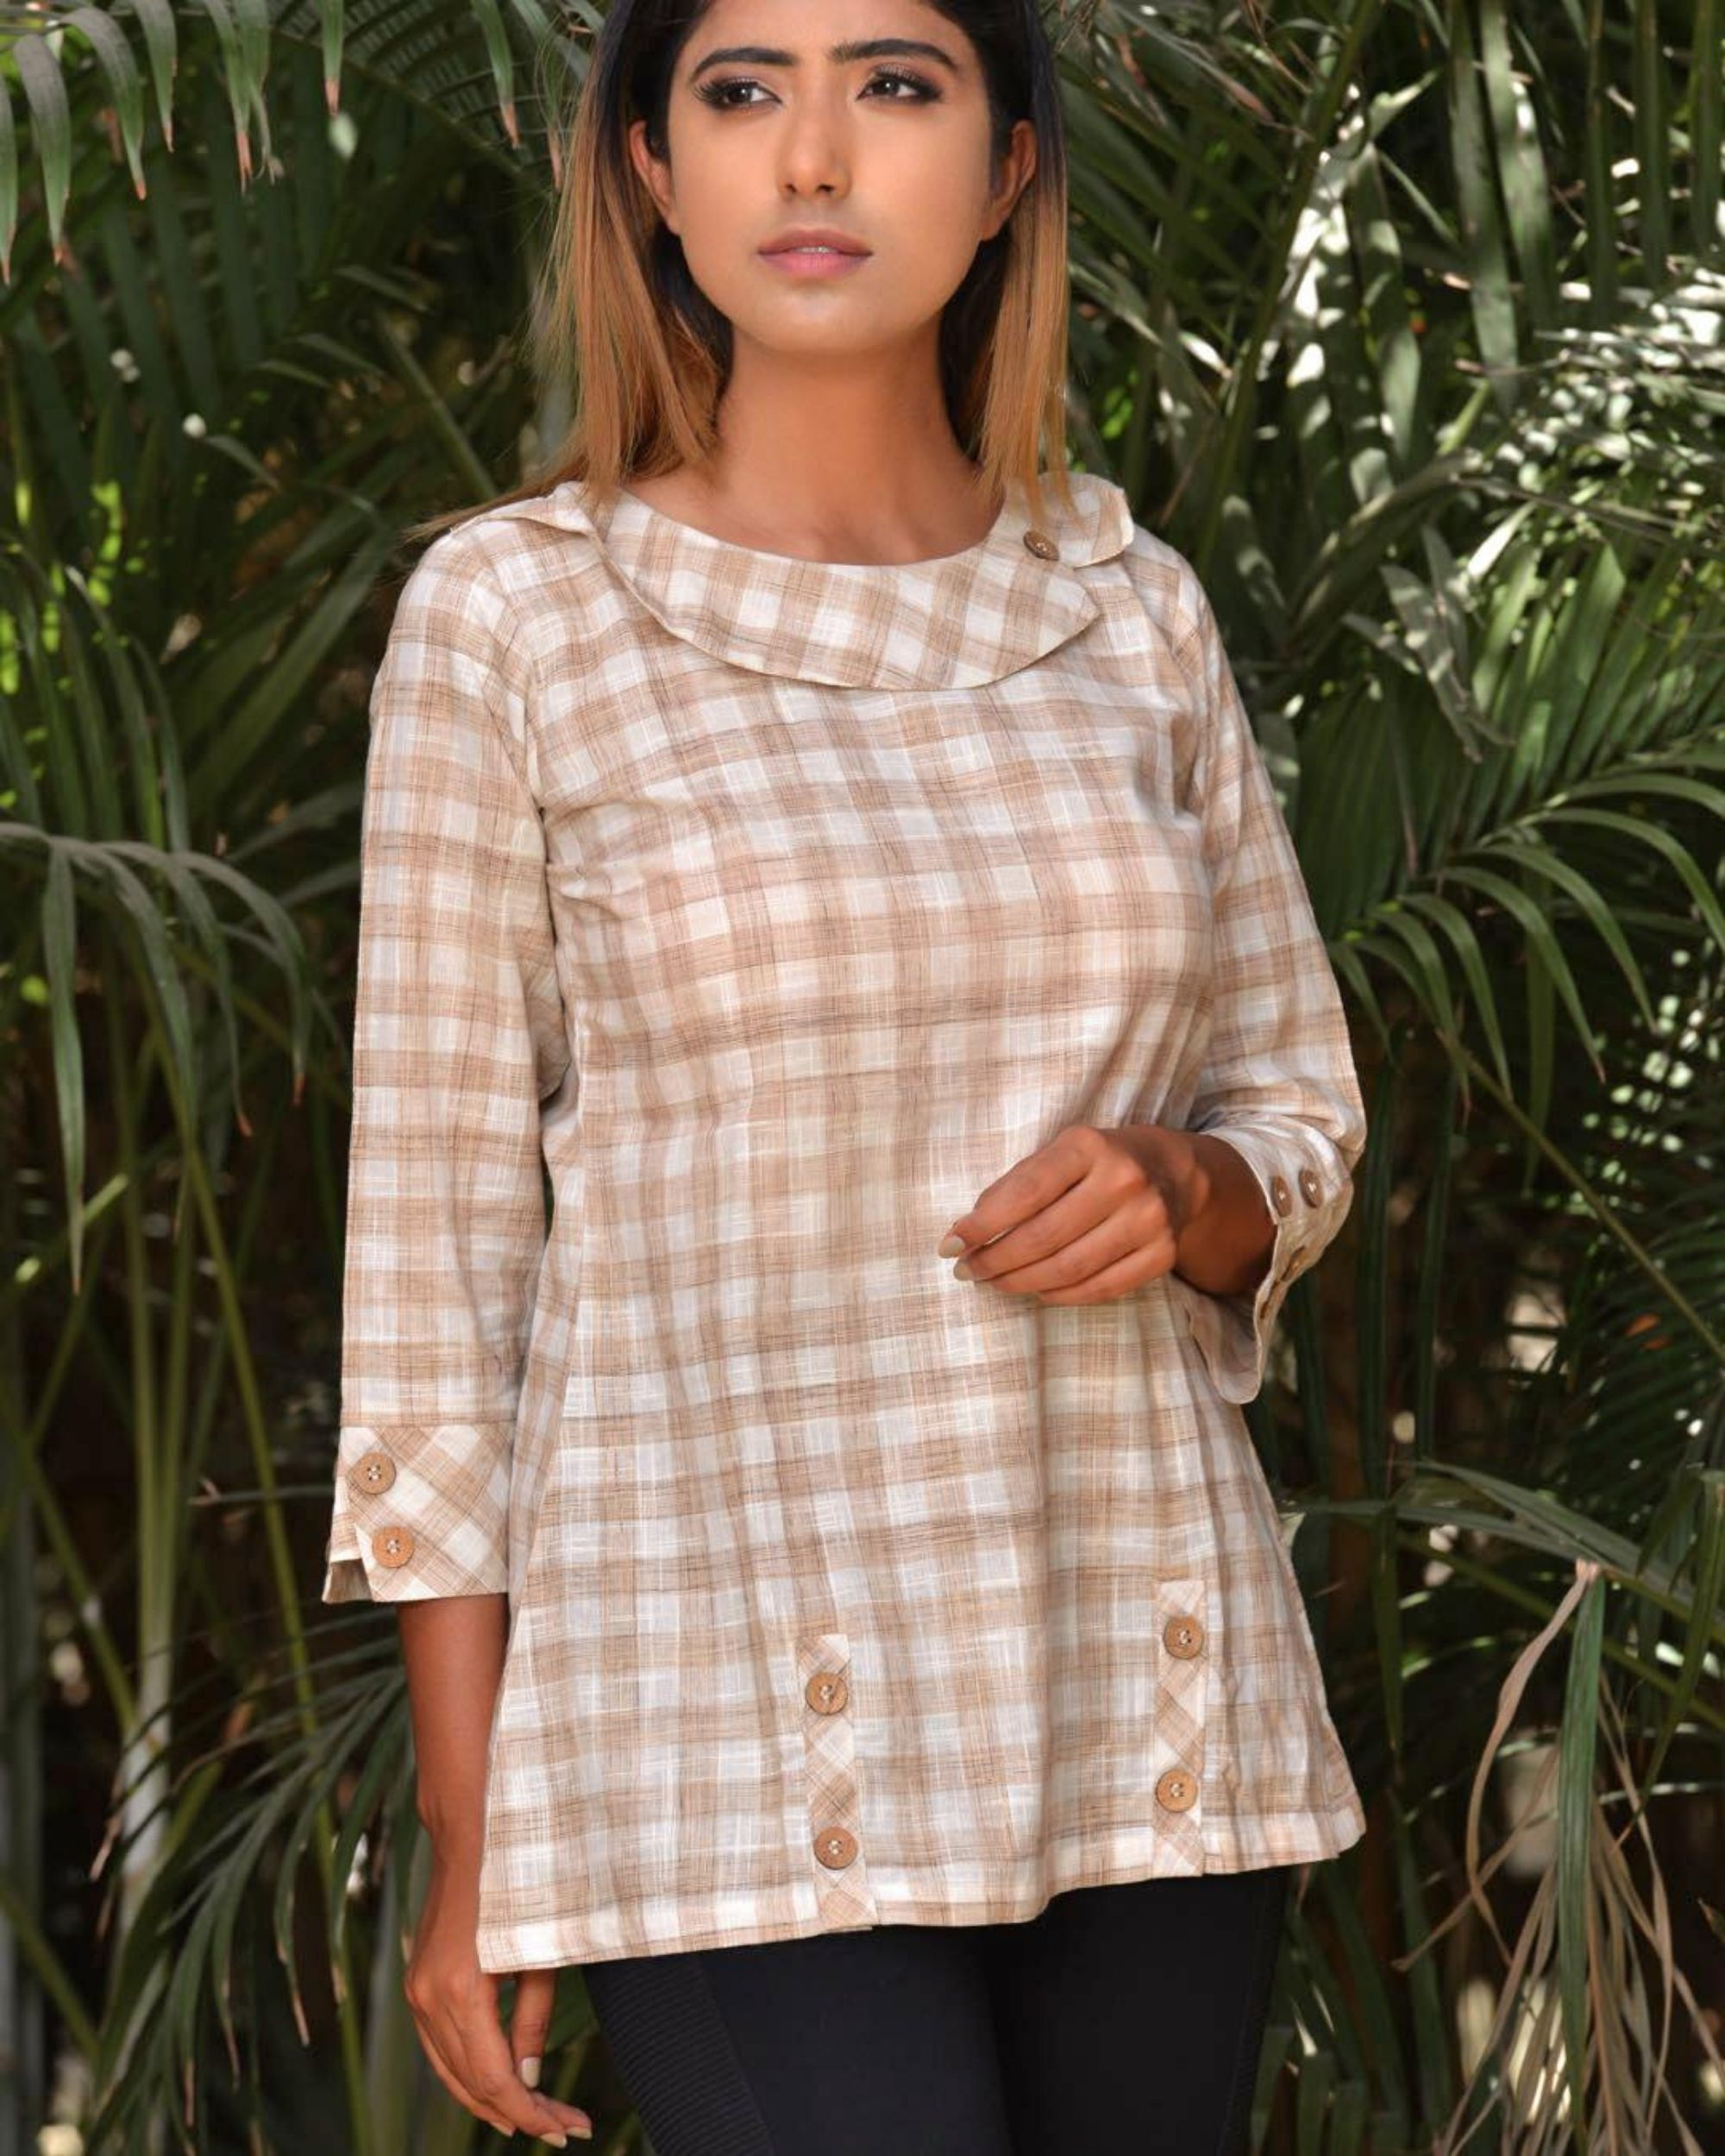 Beige and white checkered top